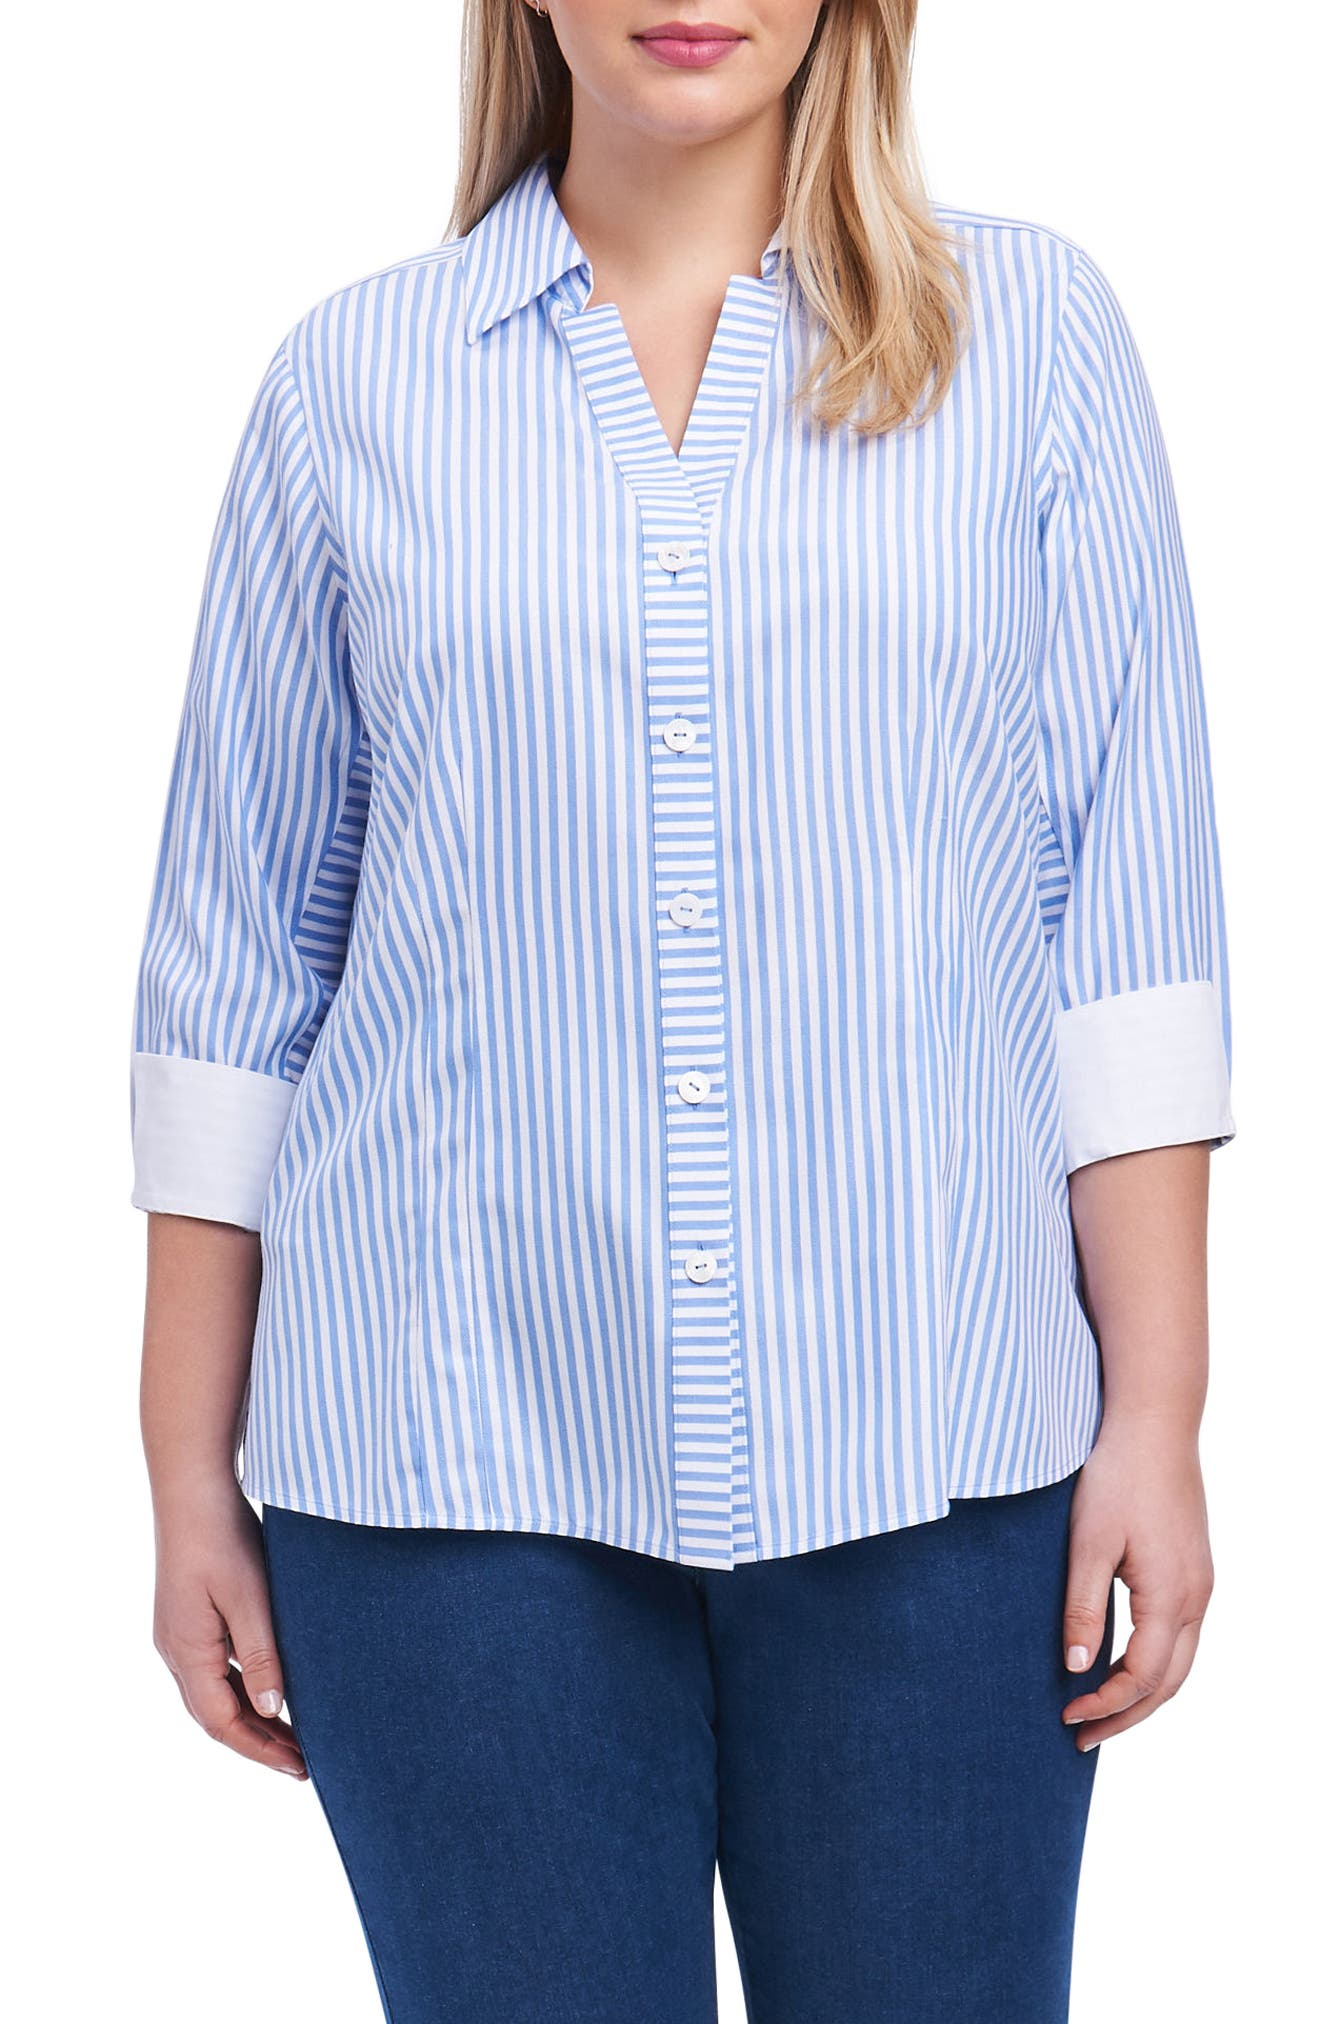 Taylor Button Down Shirt,                             Main thumbnail 1, color,                             485